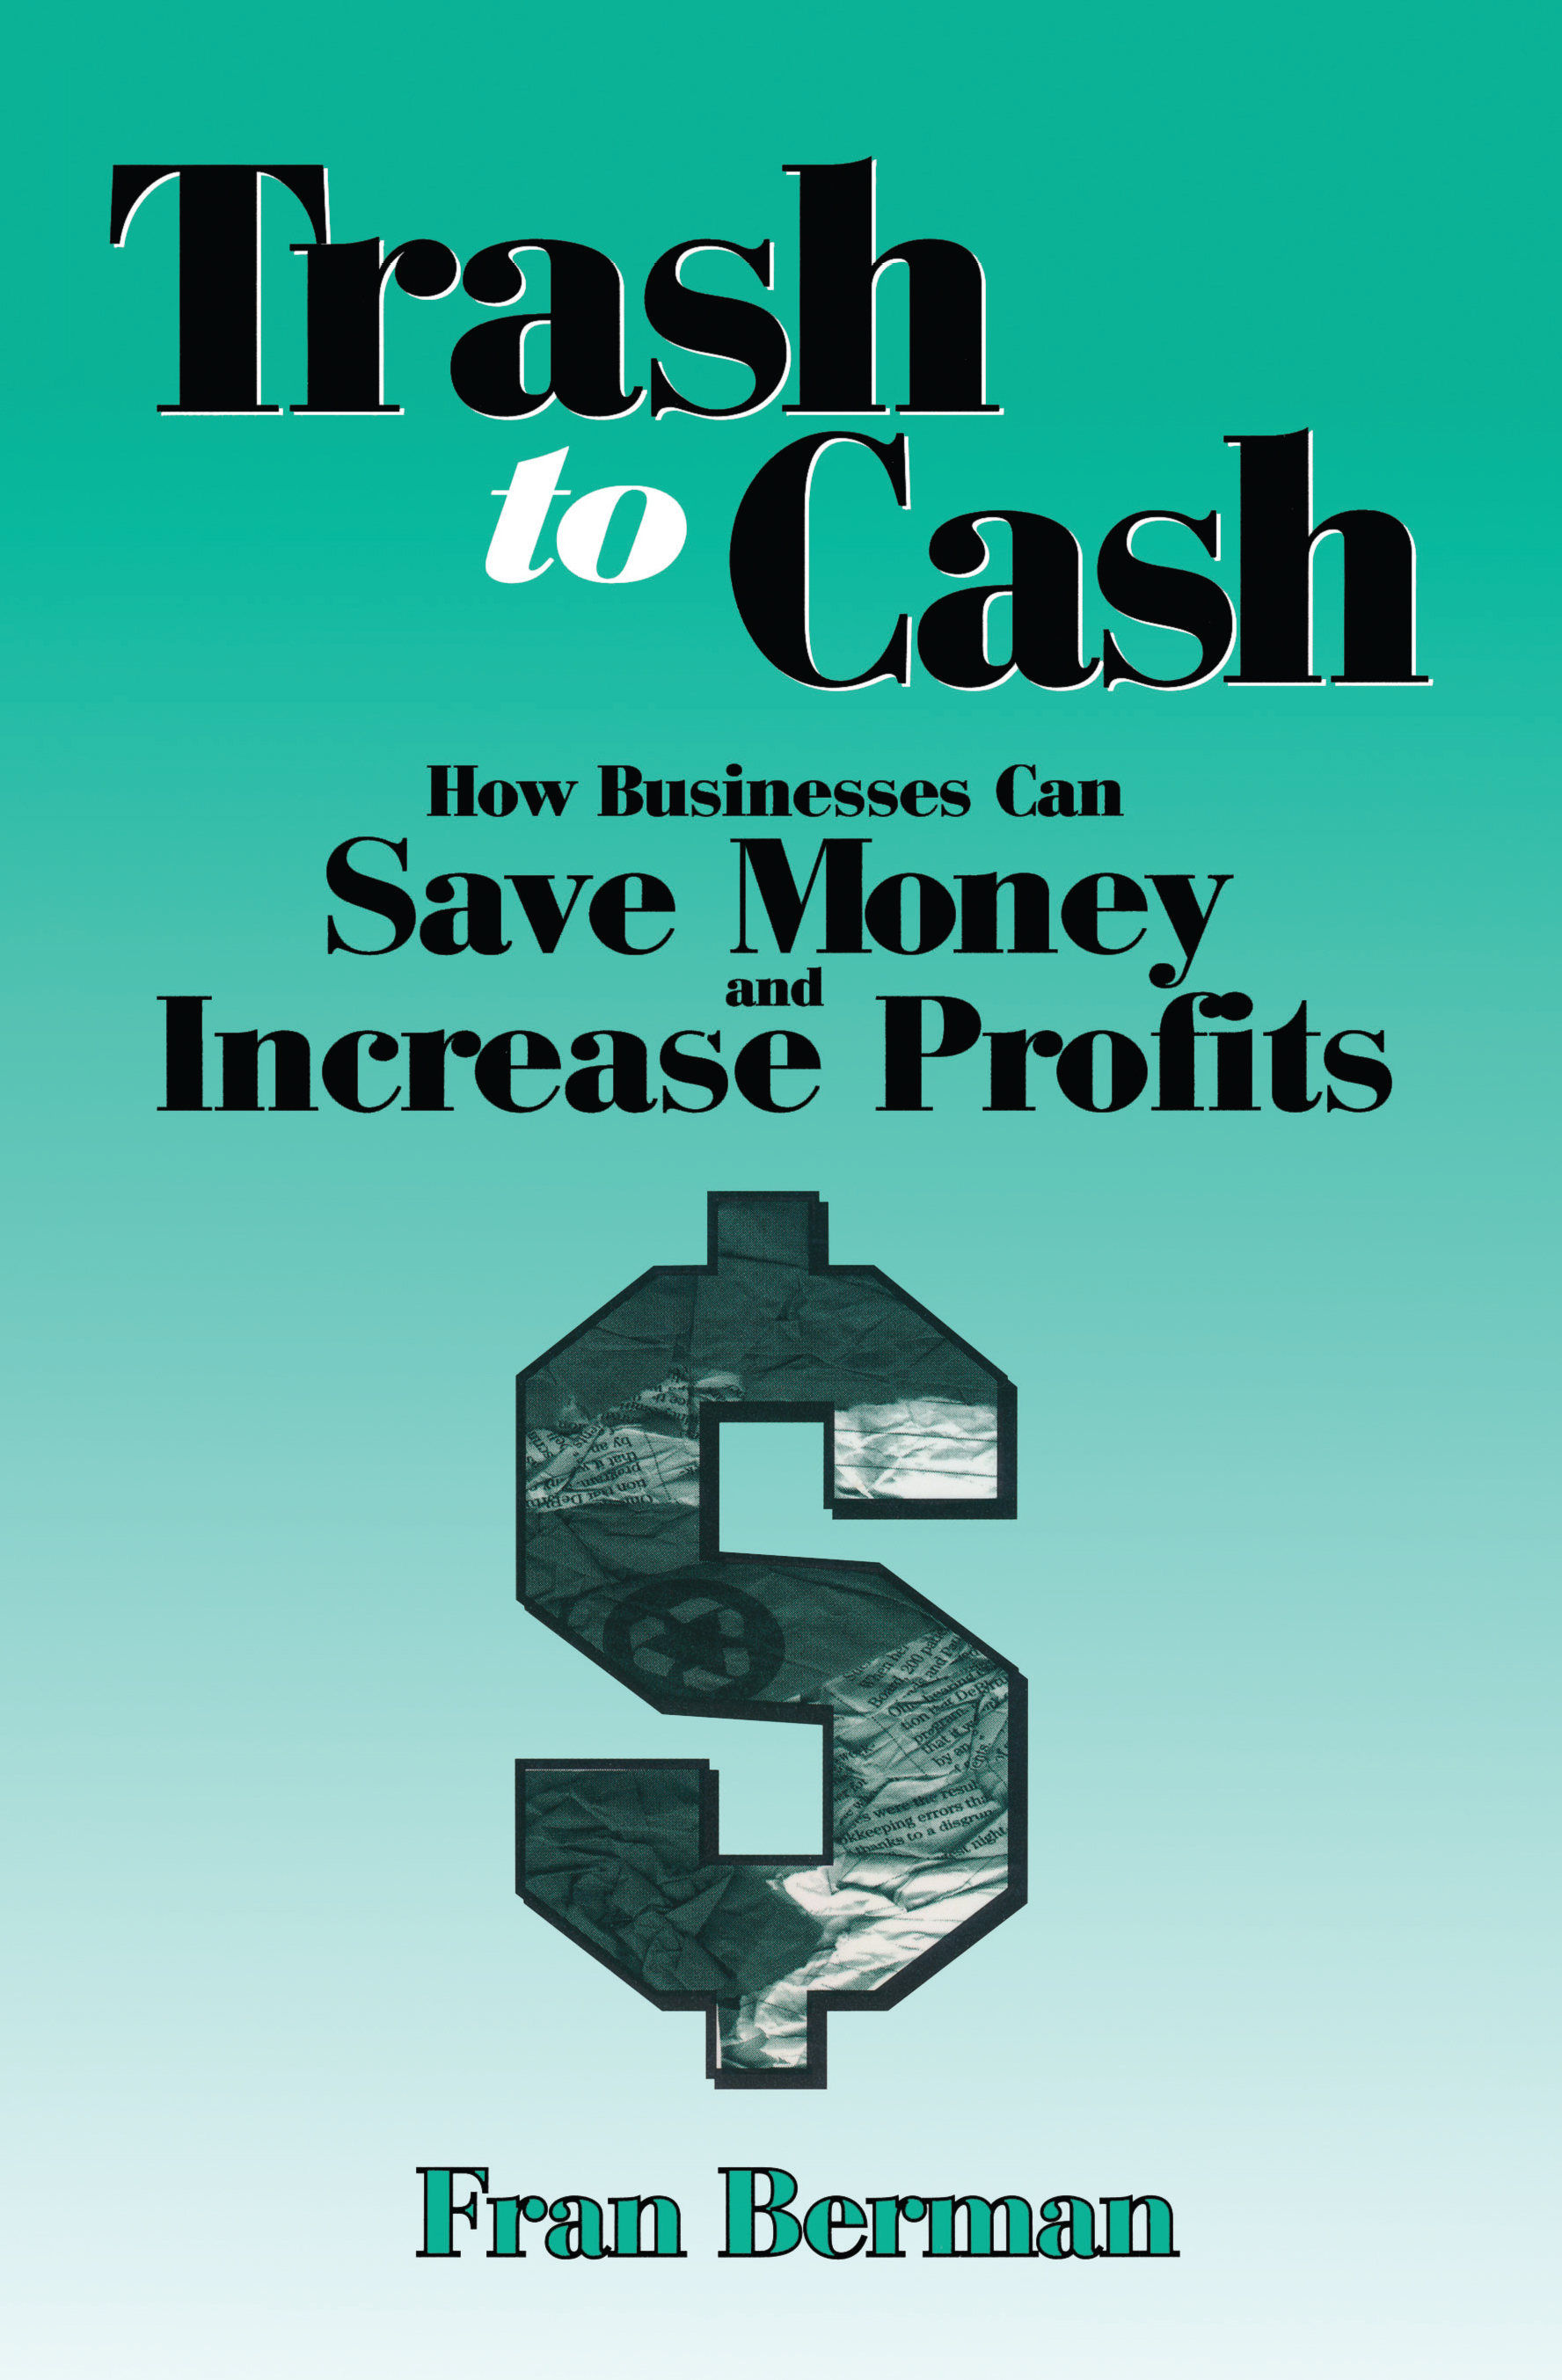 Trash to Cash: How Businesses Can Save Money and Increase Profits